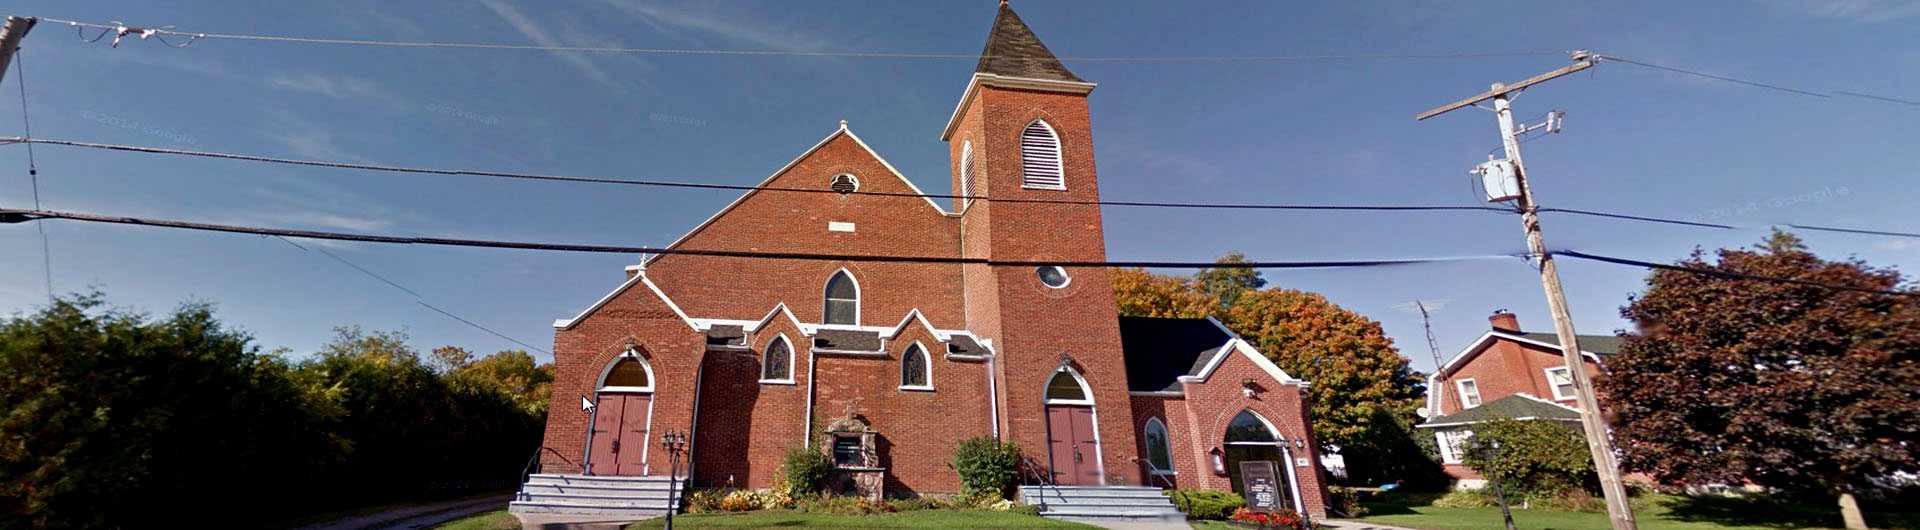 Smithfield Carman United Church Brighton Ontario